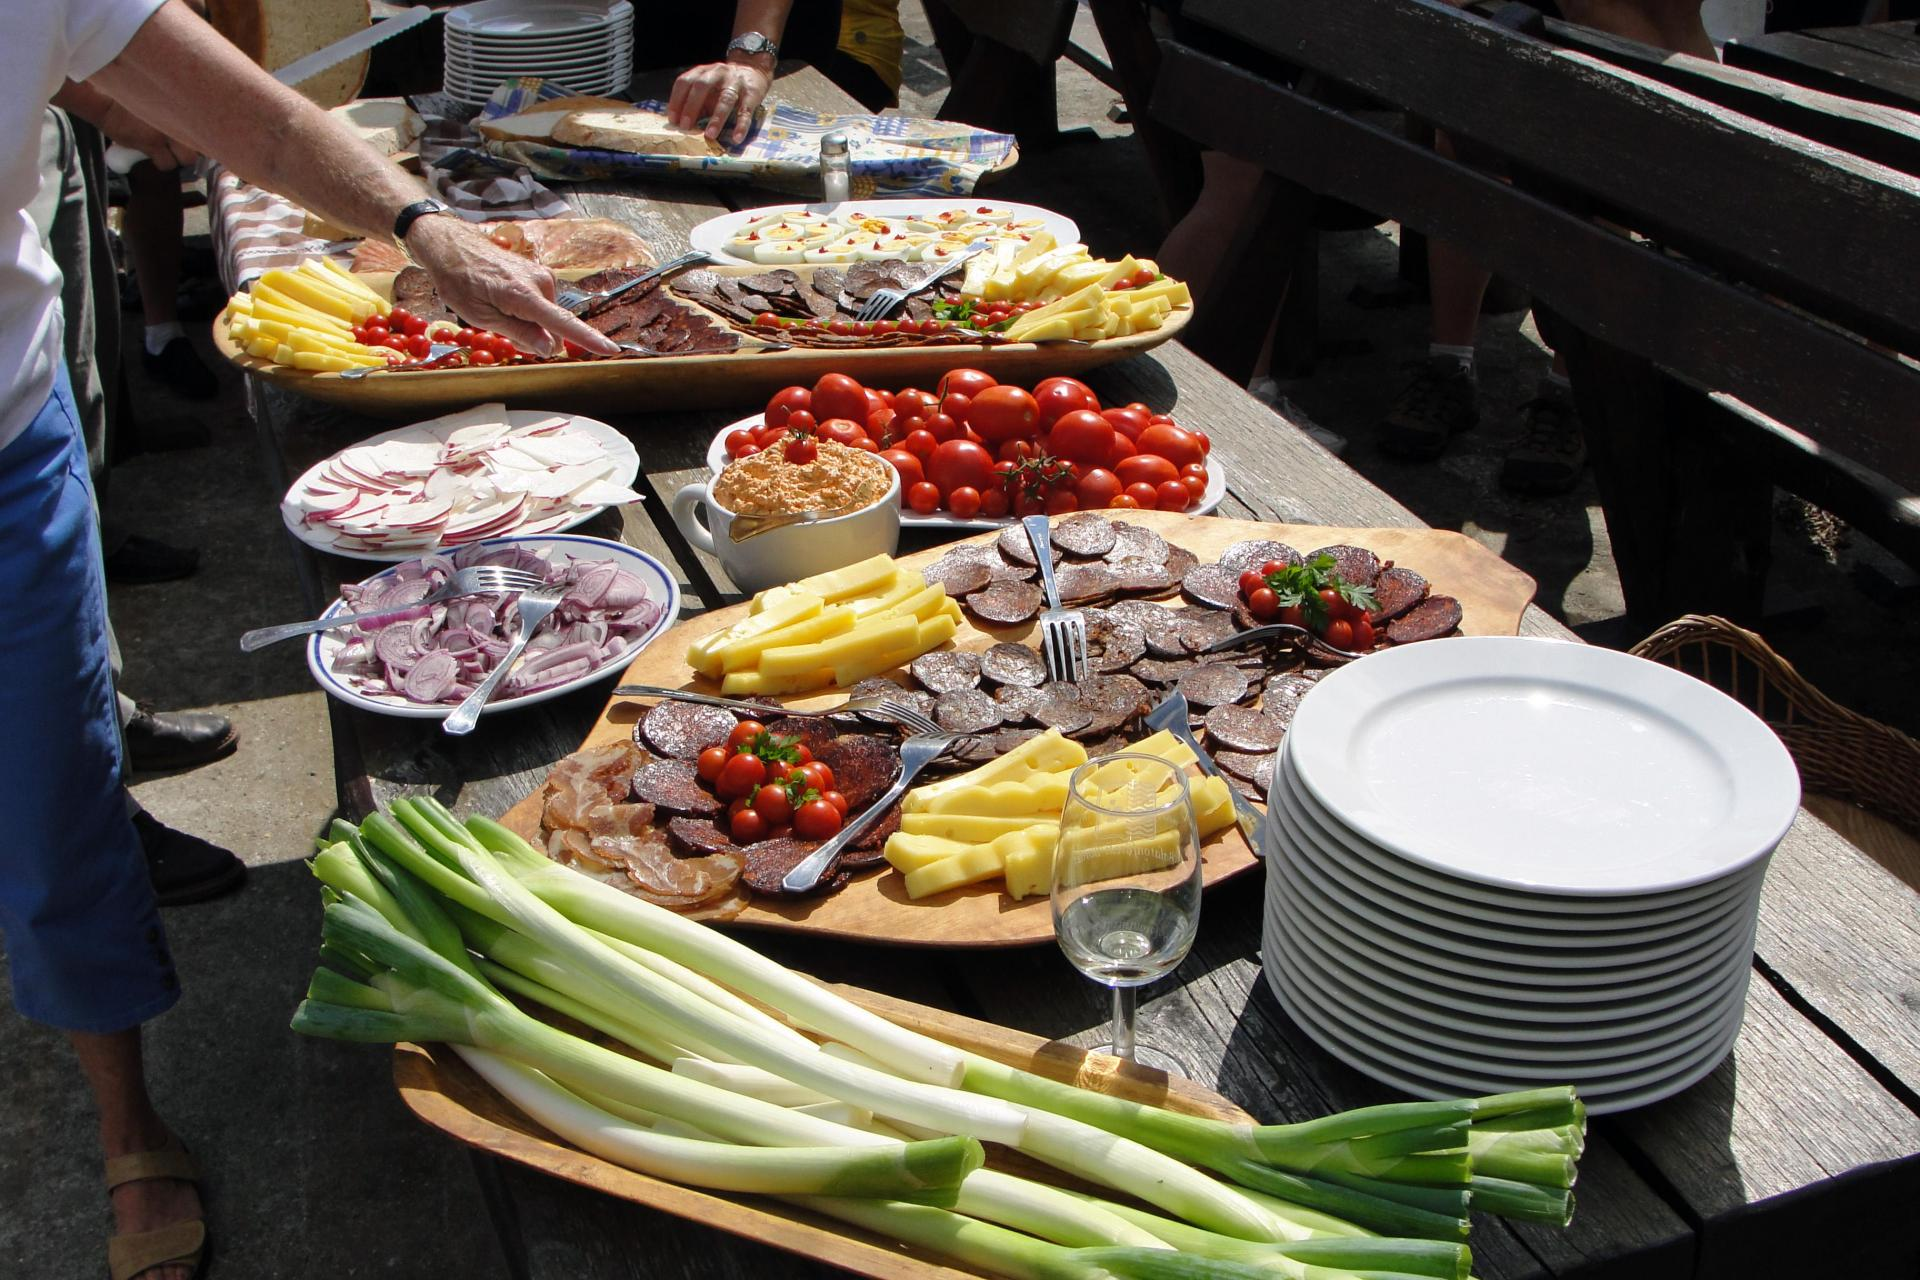 A Hungarian picnic lunch